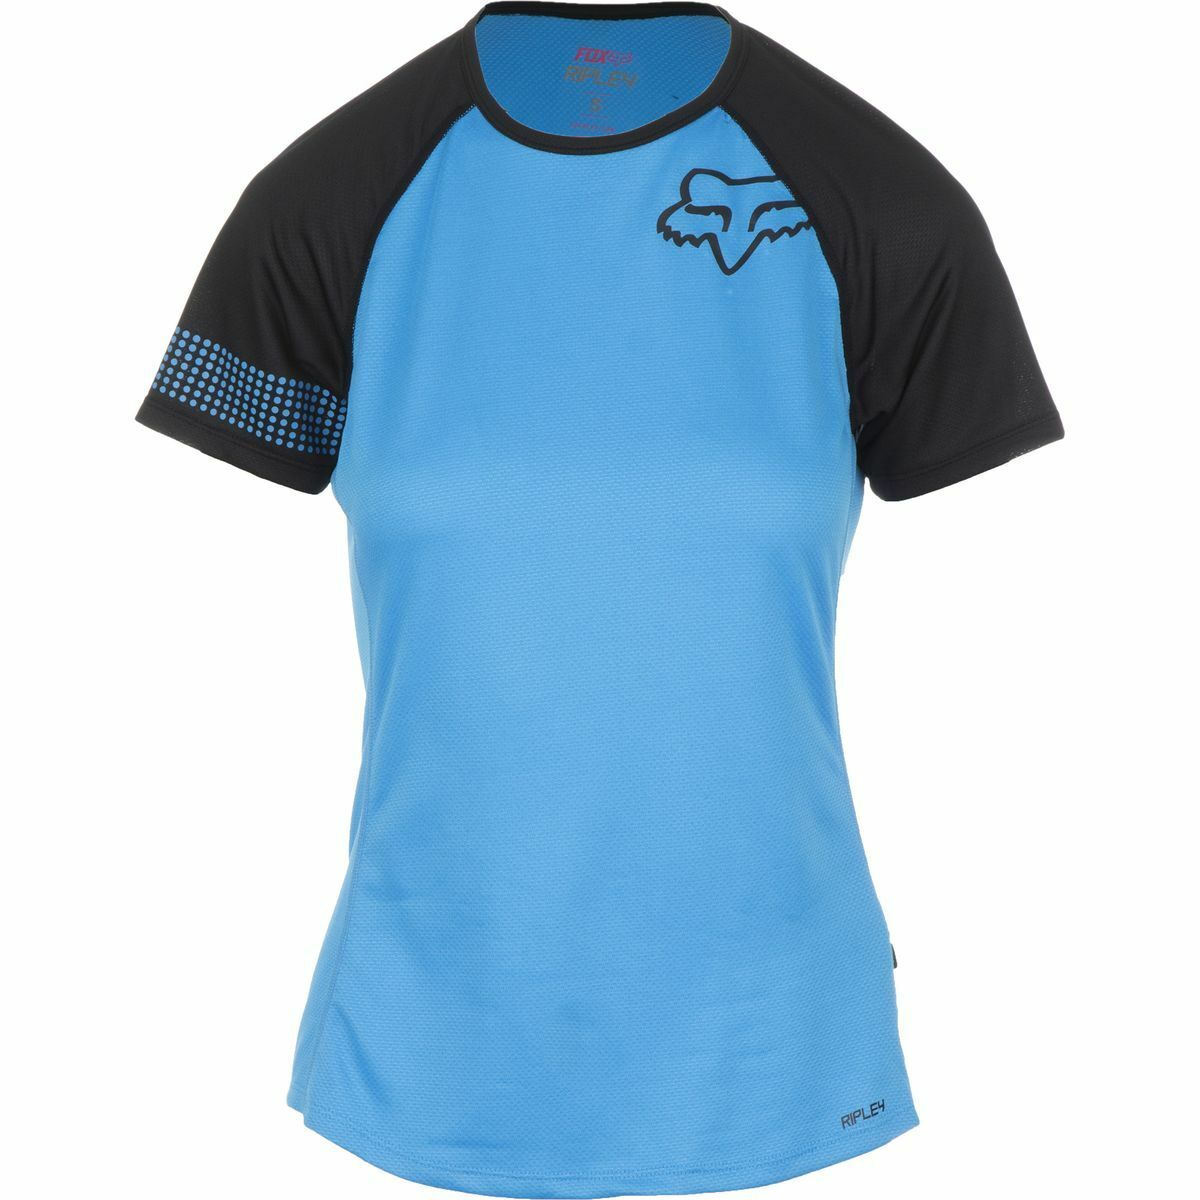 Fox Racing Womens  Ripley Limited Edition s s Jersey bluee Grey  factory outlets